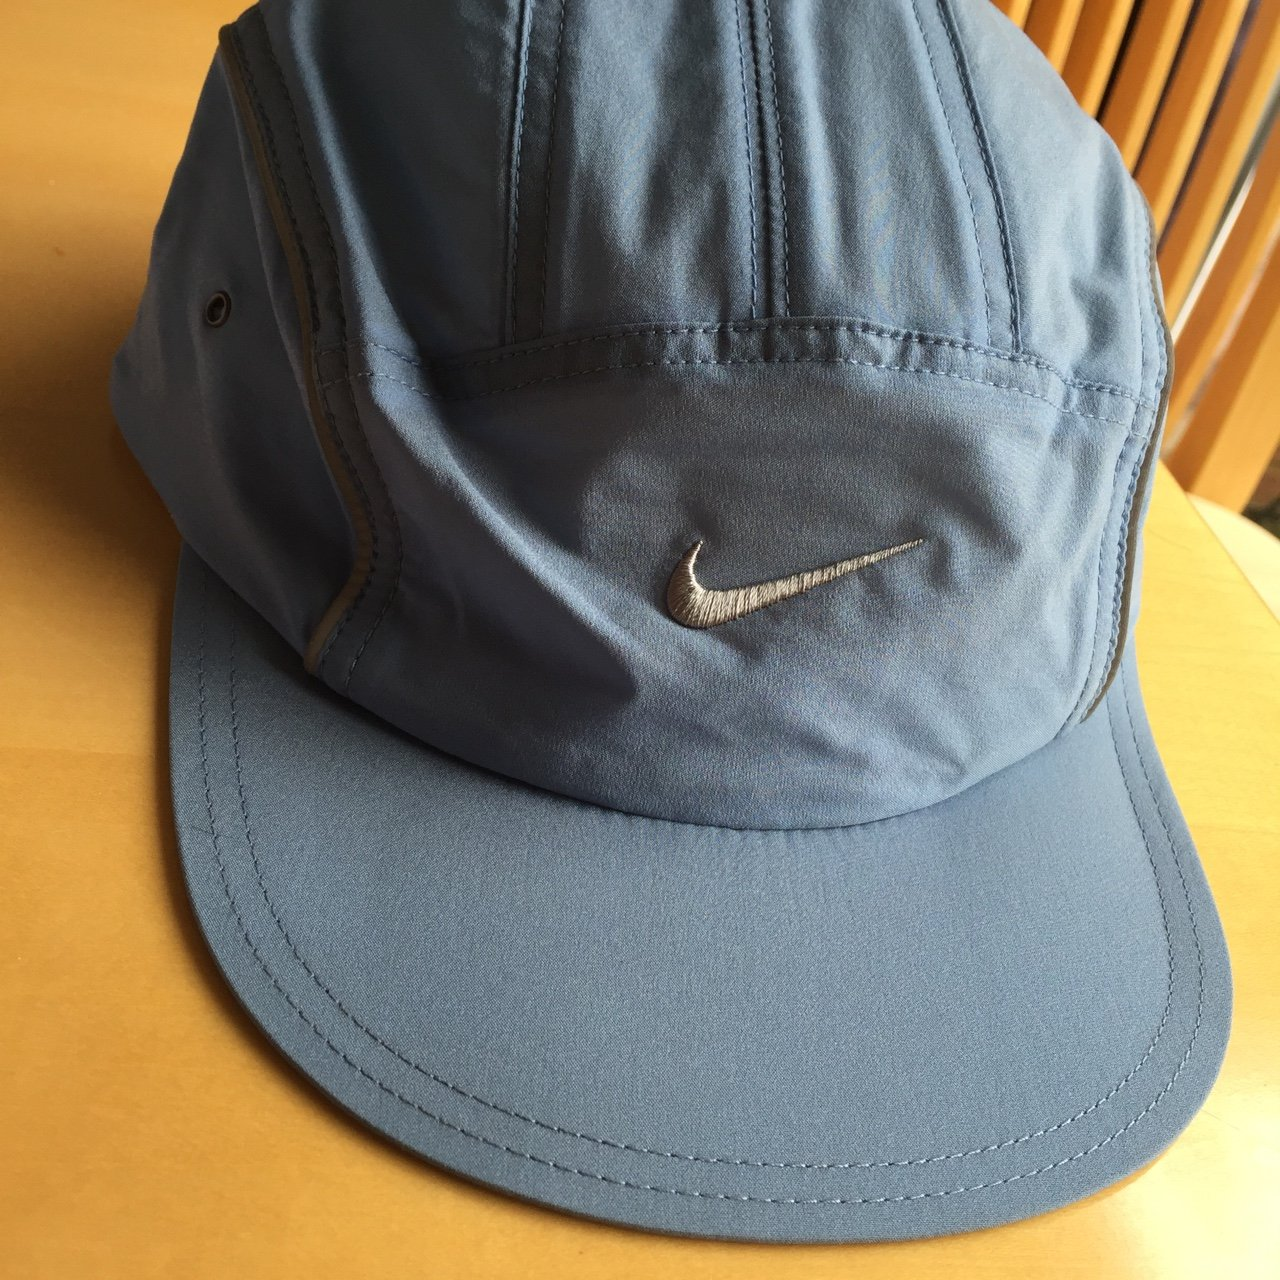 Nike Clima fit floppy peak hat with 3M brand new with tags - Depop 16de22c7999